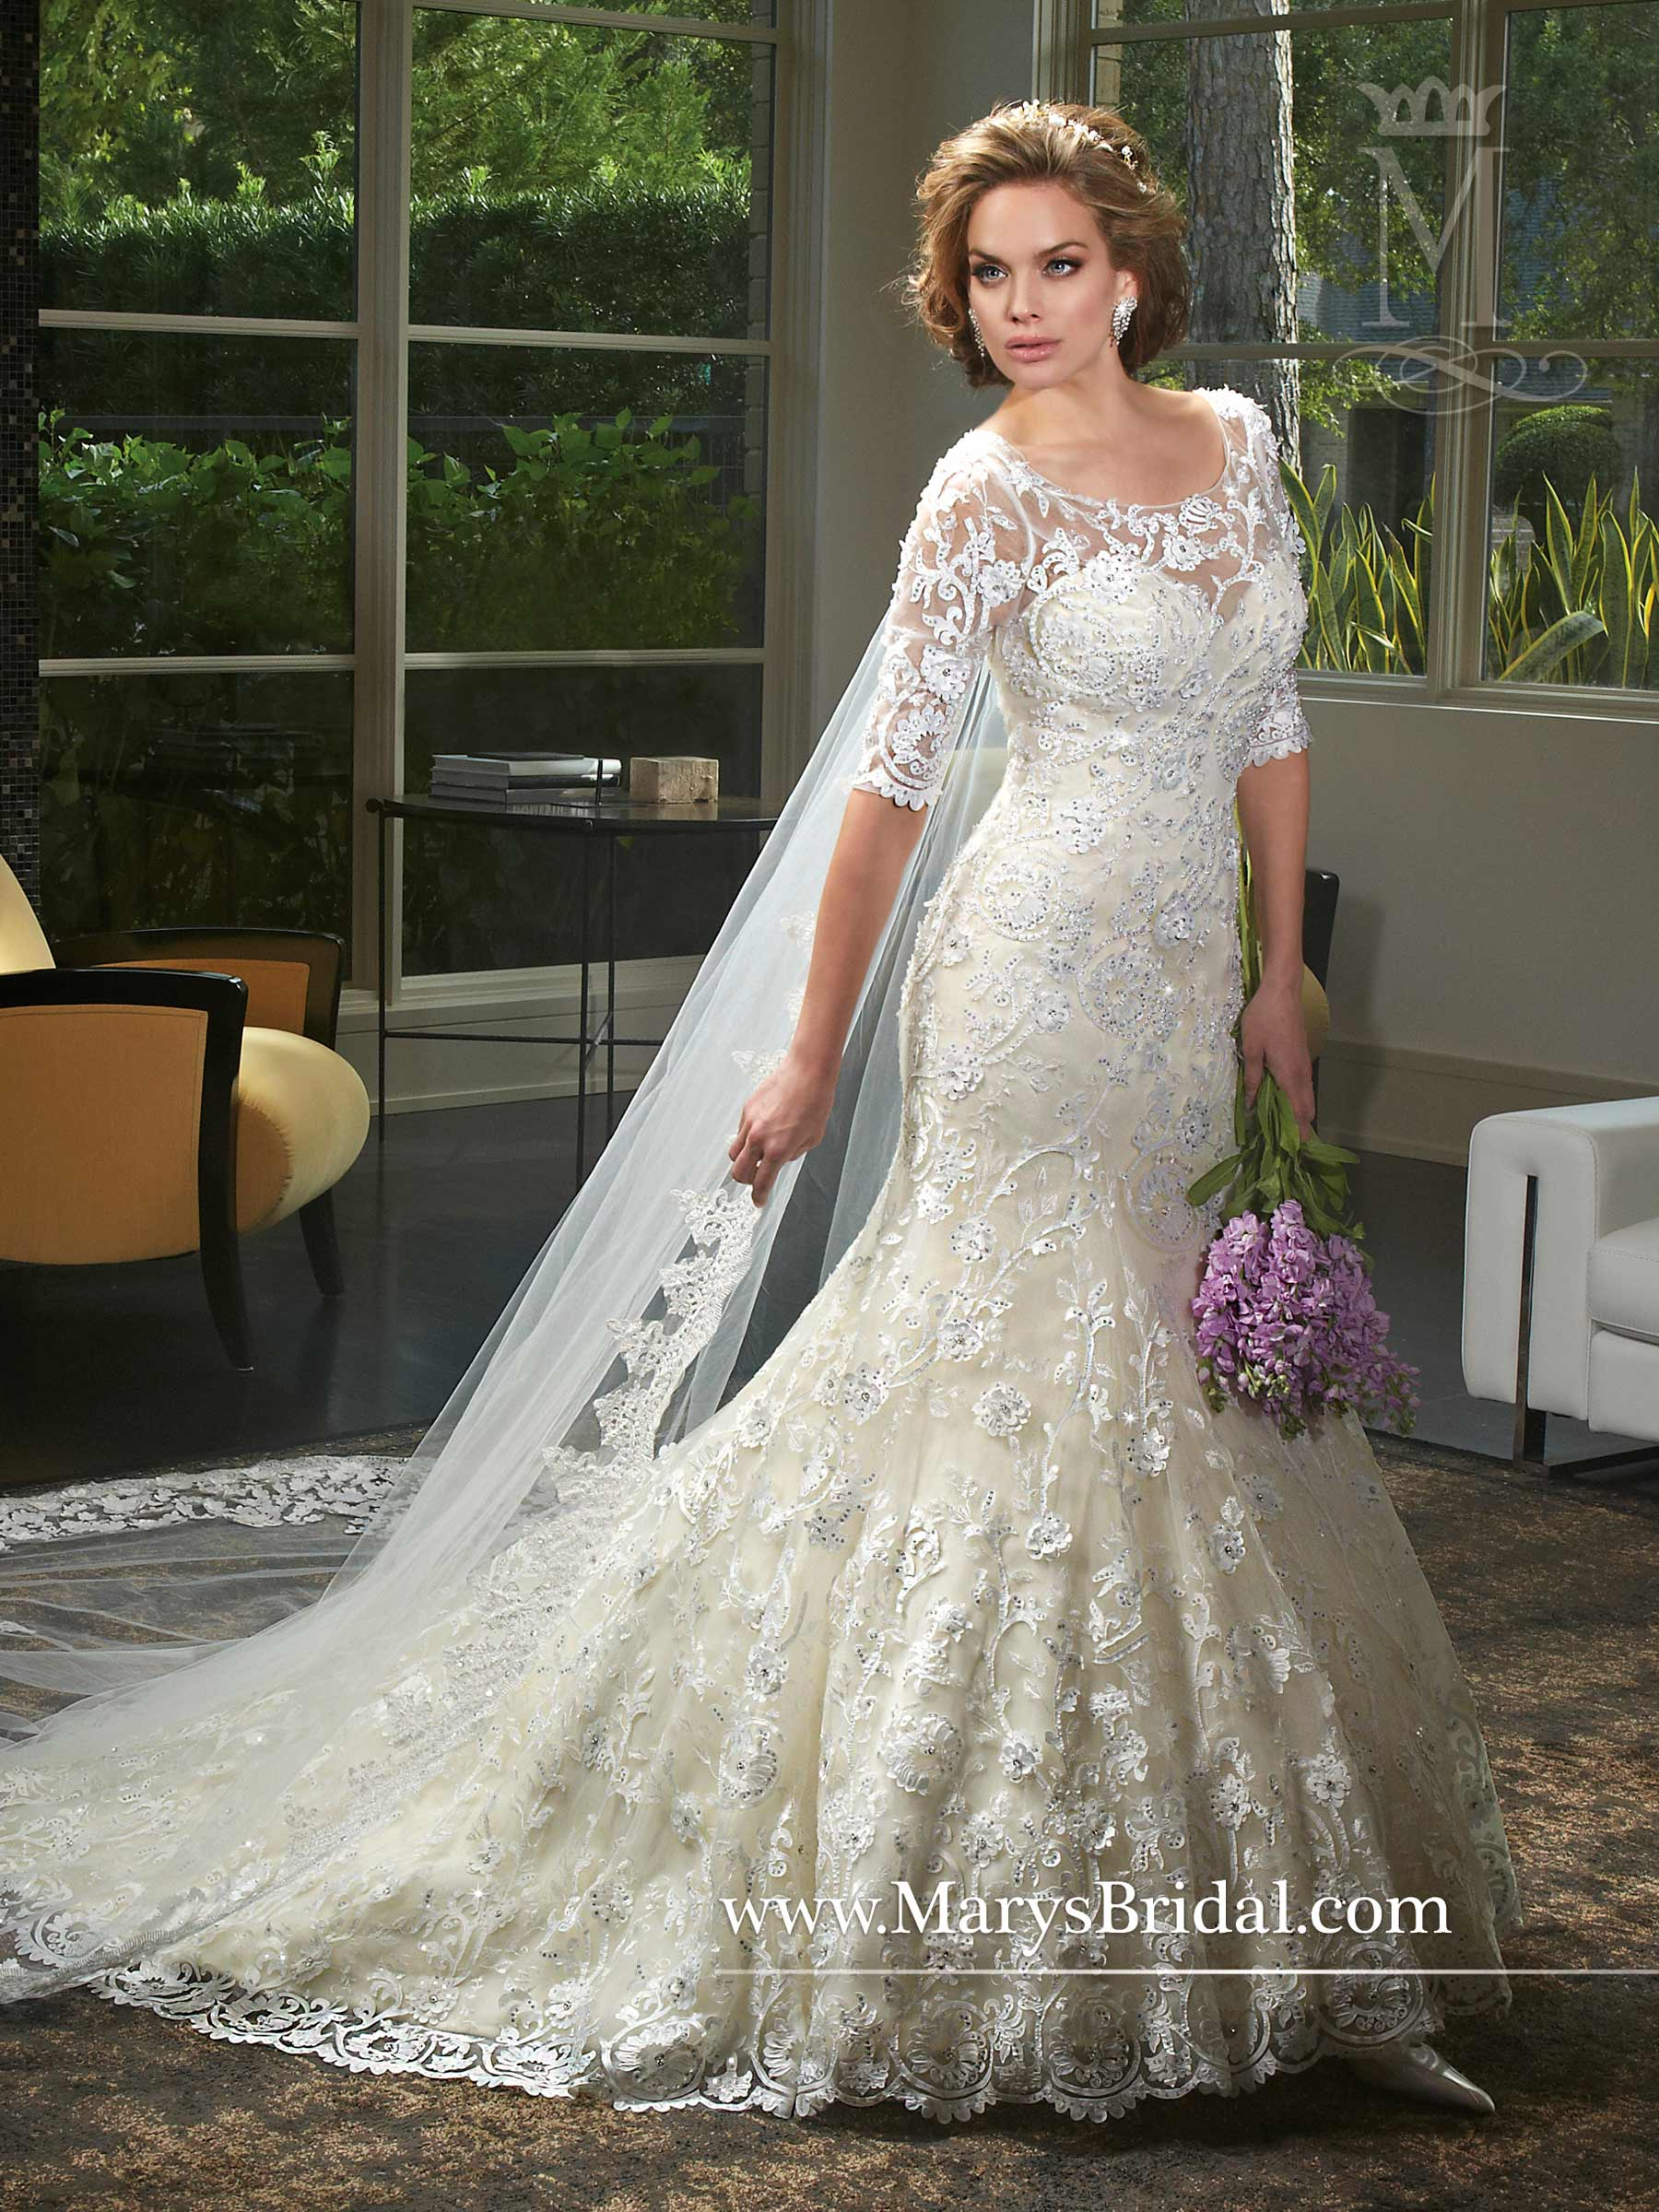 d4ead9d4885 Couture Damour Bridal Dresses | Style - 6403 in Vanilla or White Color